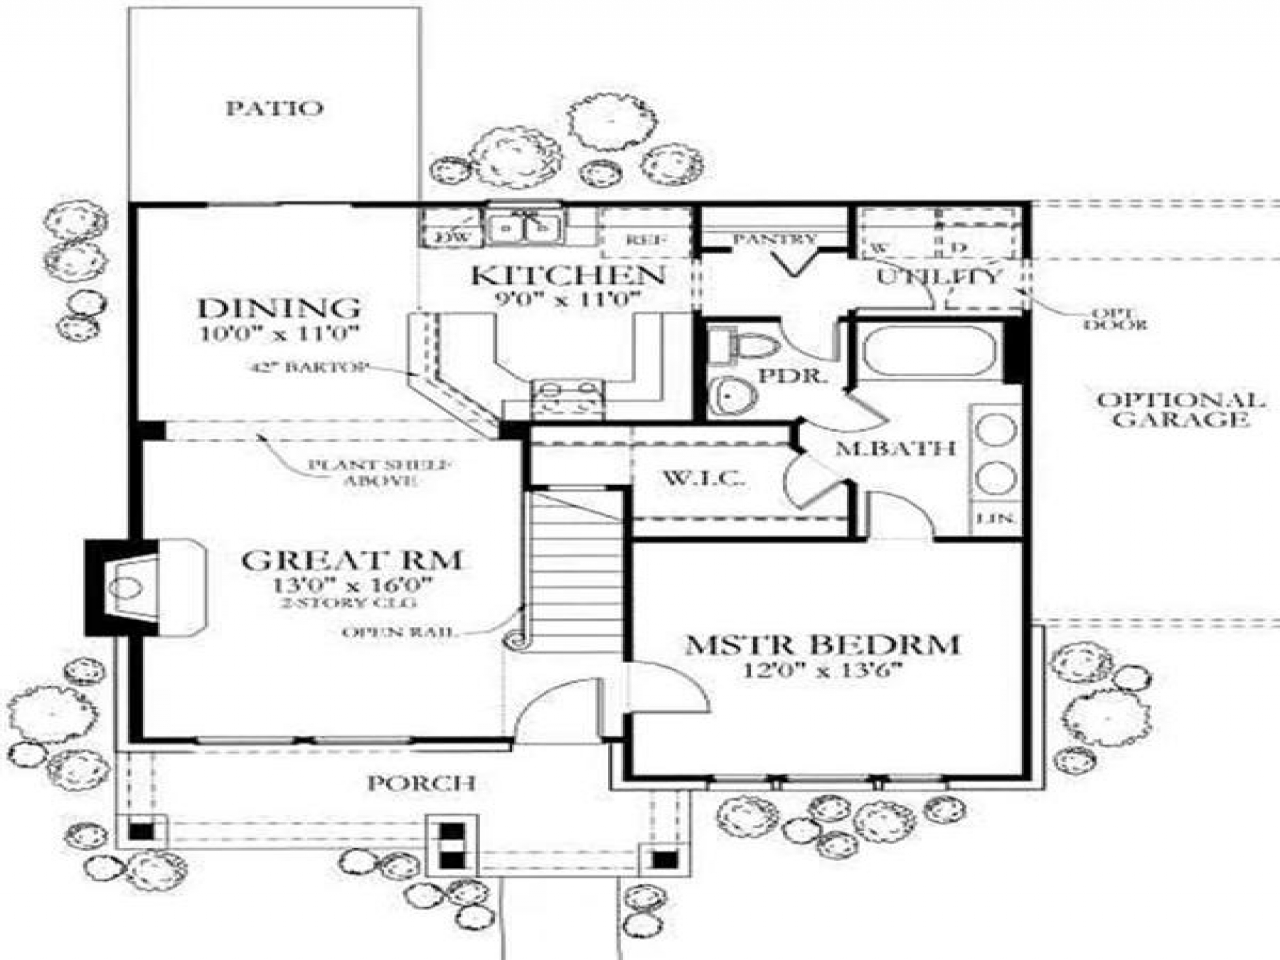 Home Design Floor Plans: Small Country Home Floor Plans Small Barn Homes, Small